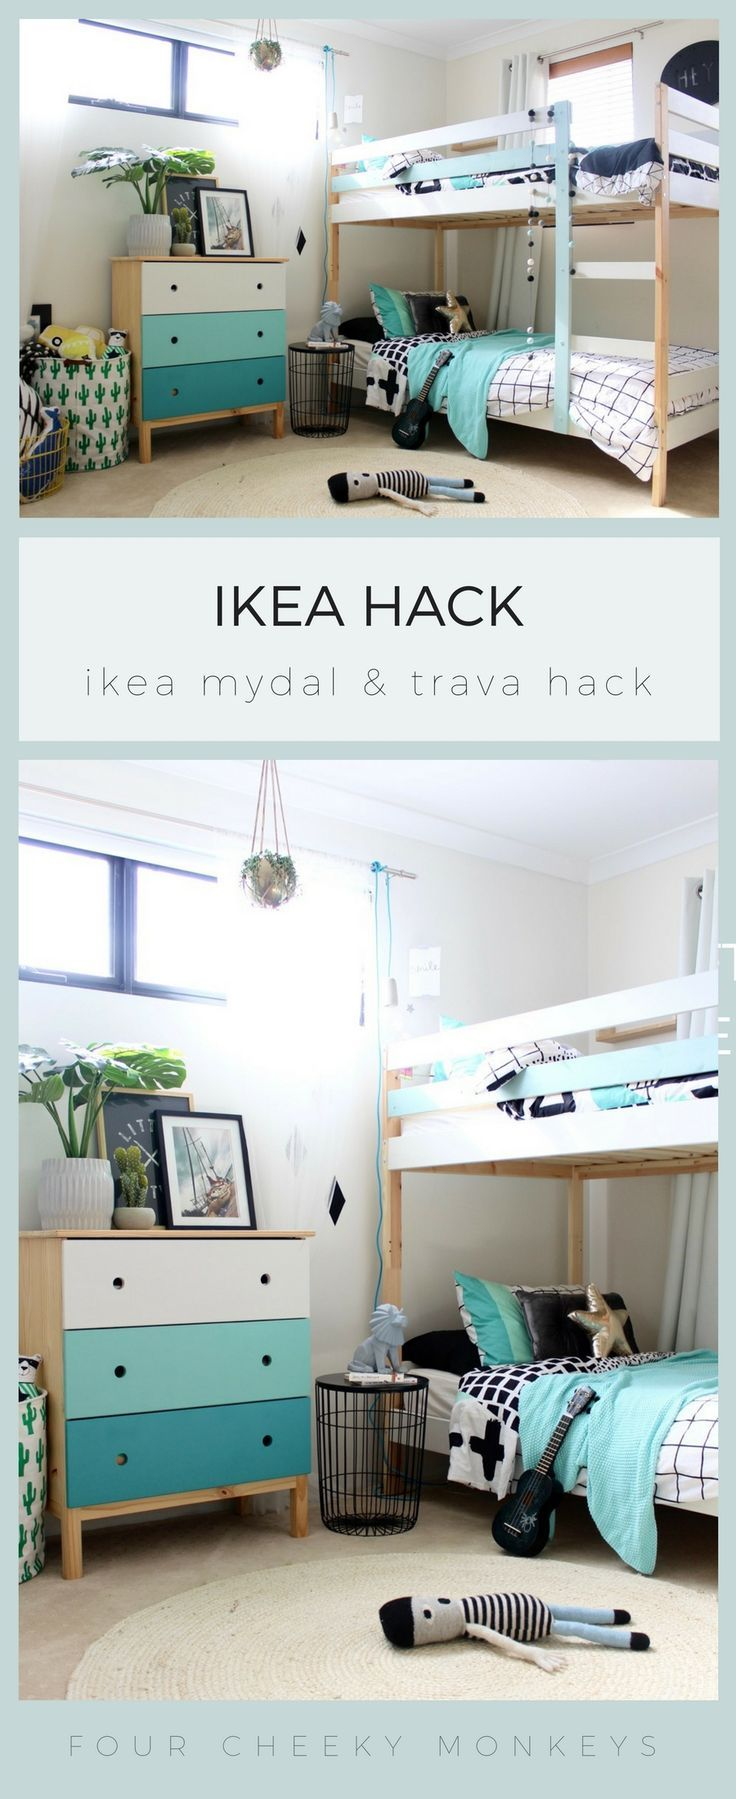 ikea mydal bunk bed hack | ikea hacks für kinder | bunk beds, ikea